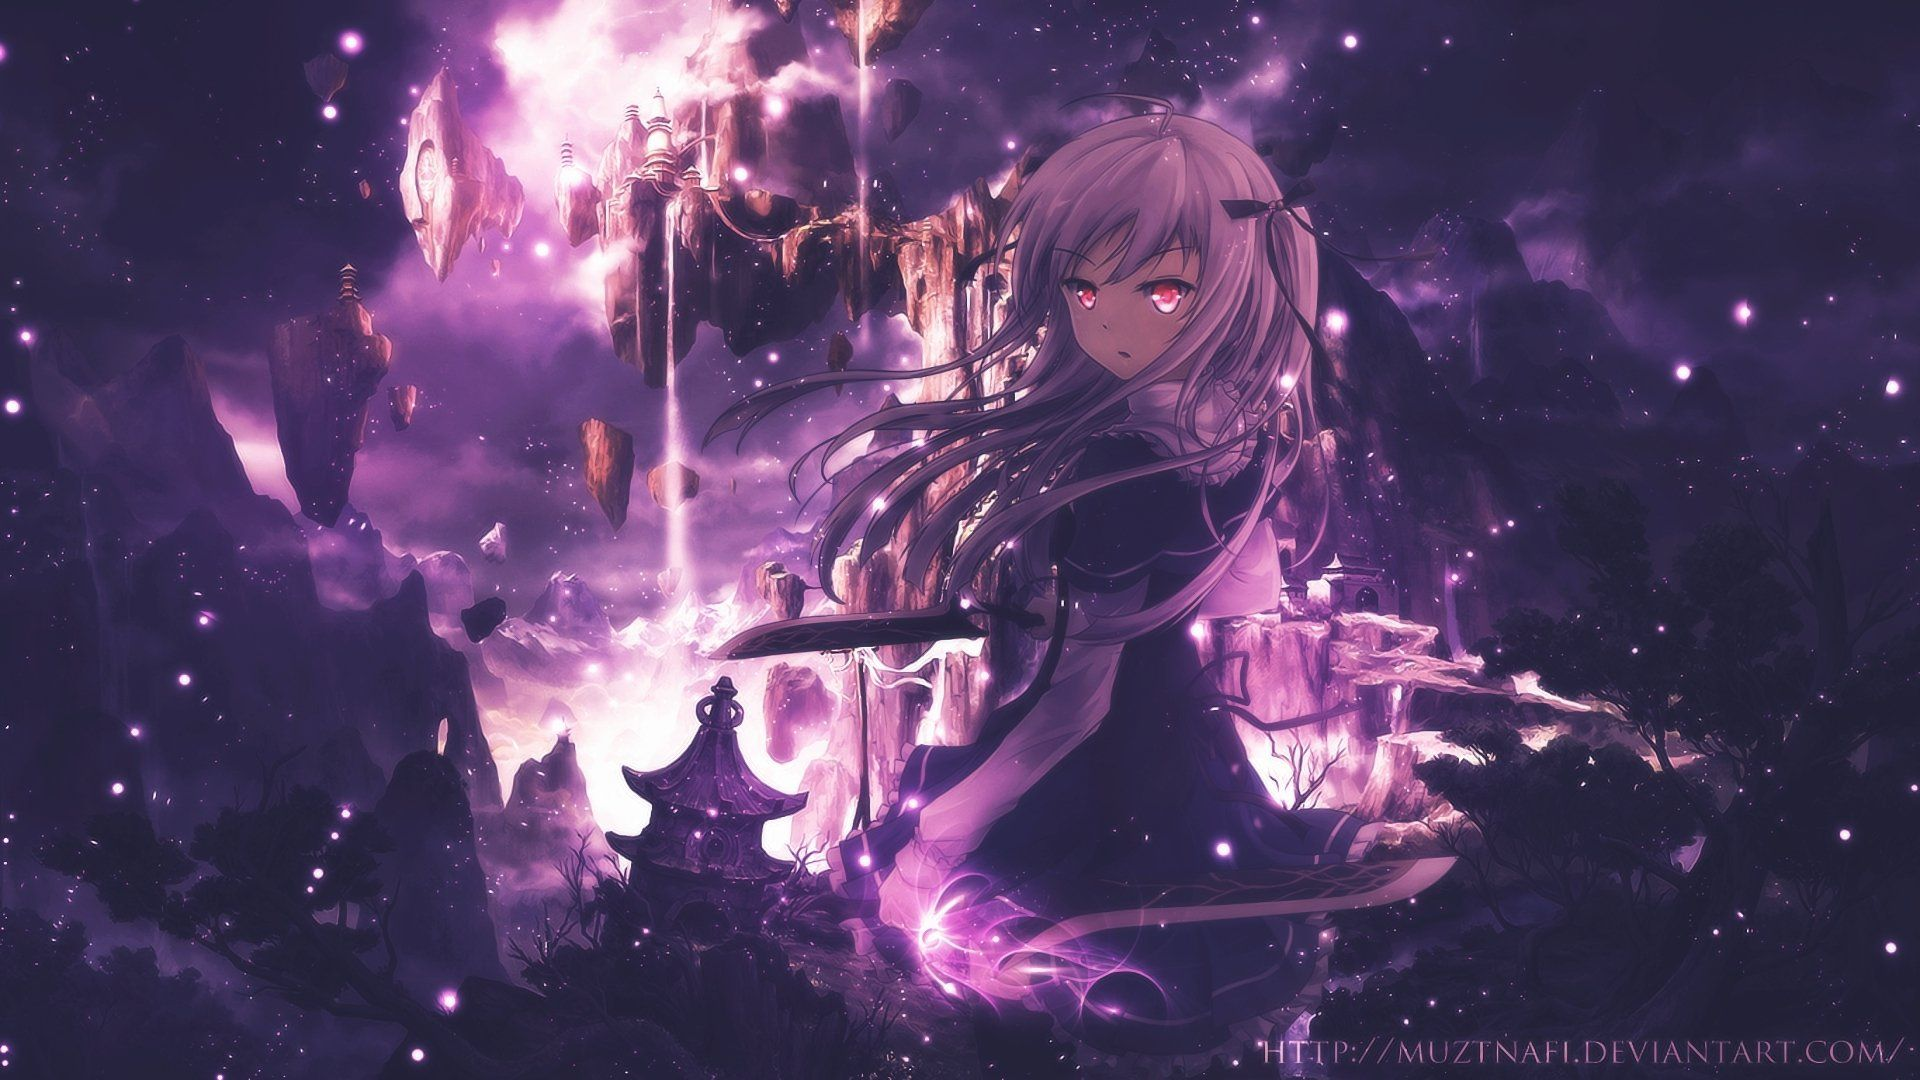 Anime Absolute Duo Wallpaper Anime Wallpaper Live Anime Wallpaper Anime Scenery Wallpaper